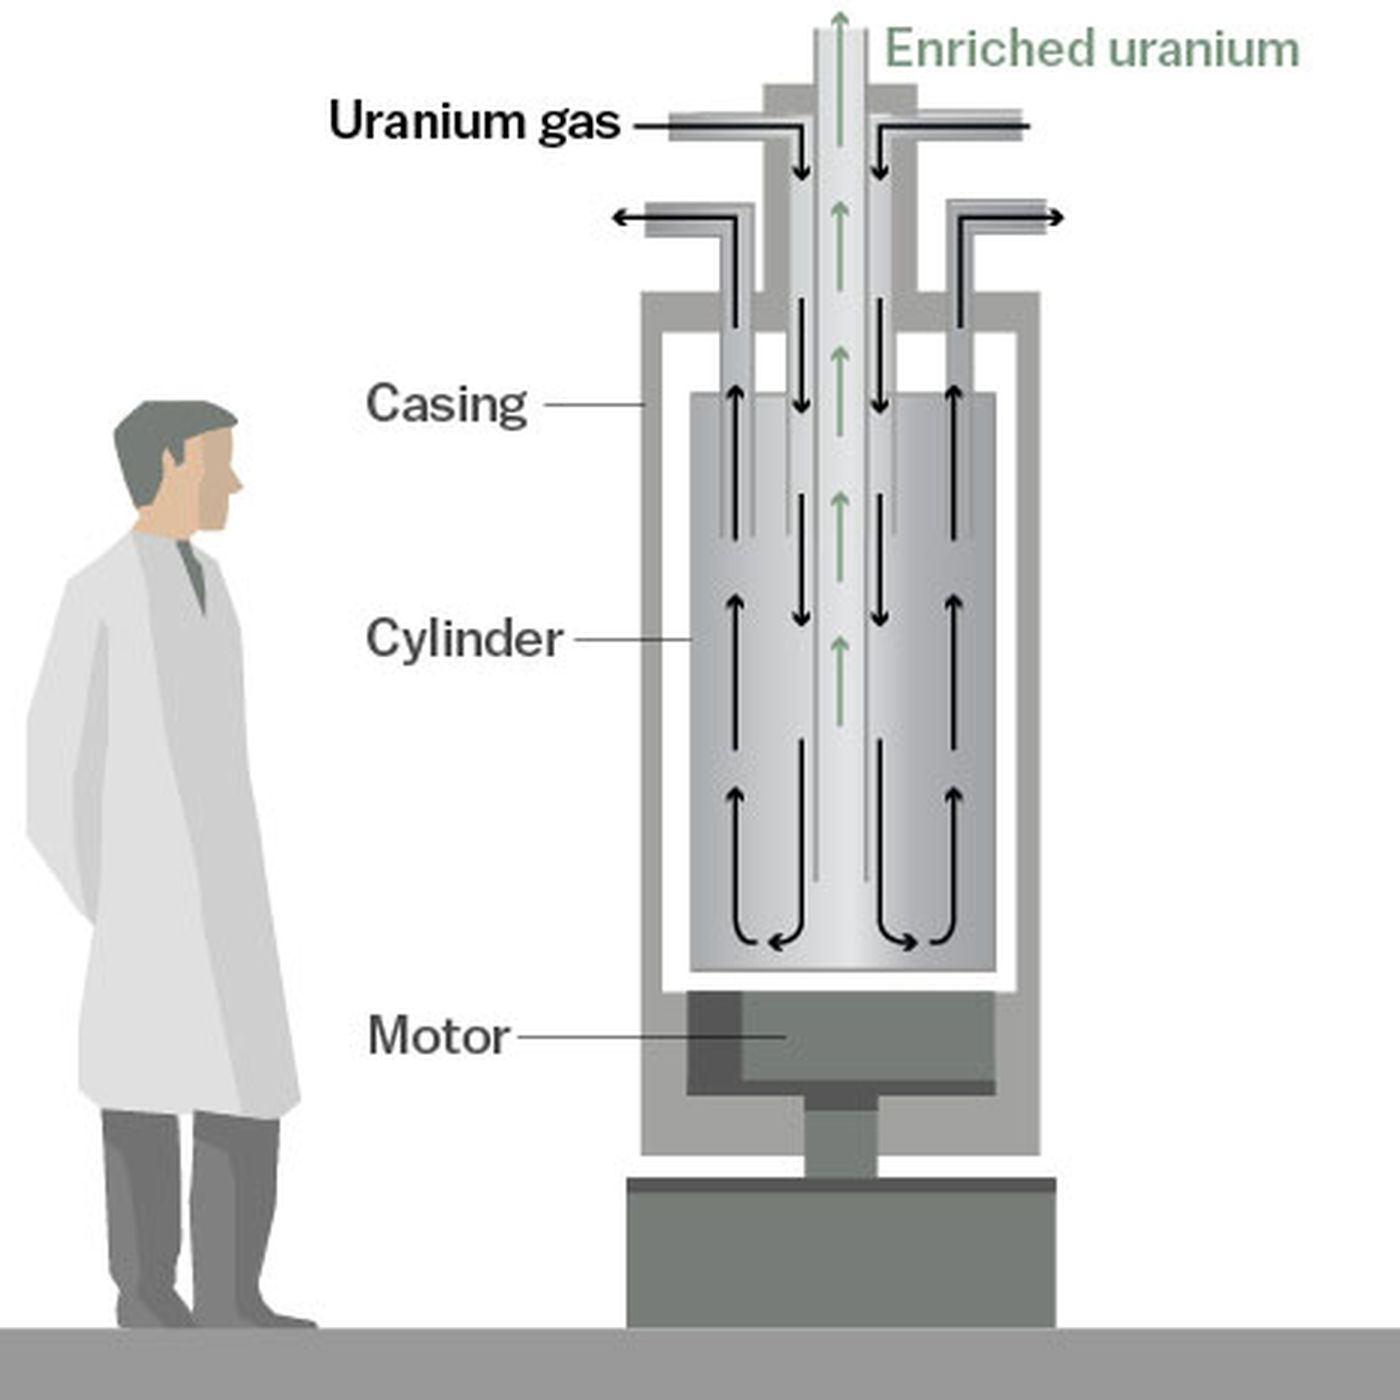 Trump Kim Summit In Singapore Why Uranium Enrichment Will Be A Key And Apparatus By The Harnessing Of Centrifugal Force Diagram Image Point Talks Vox